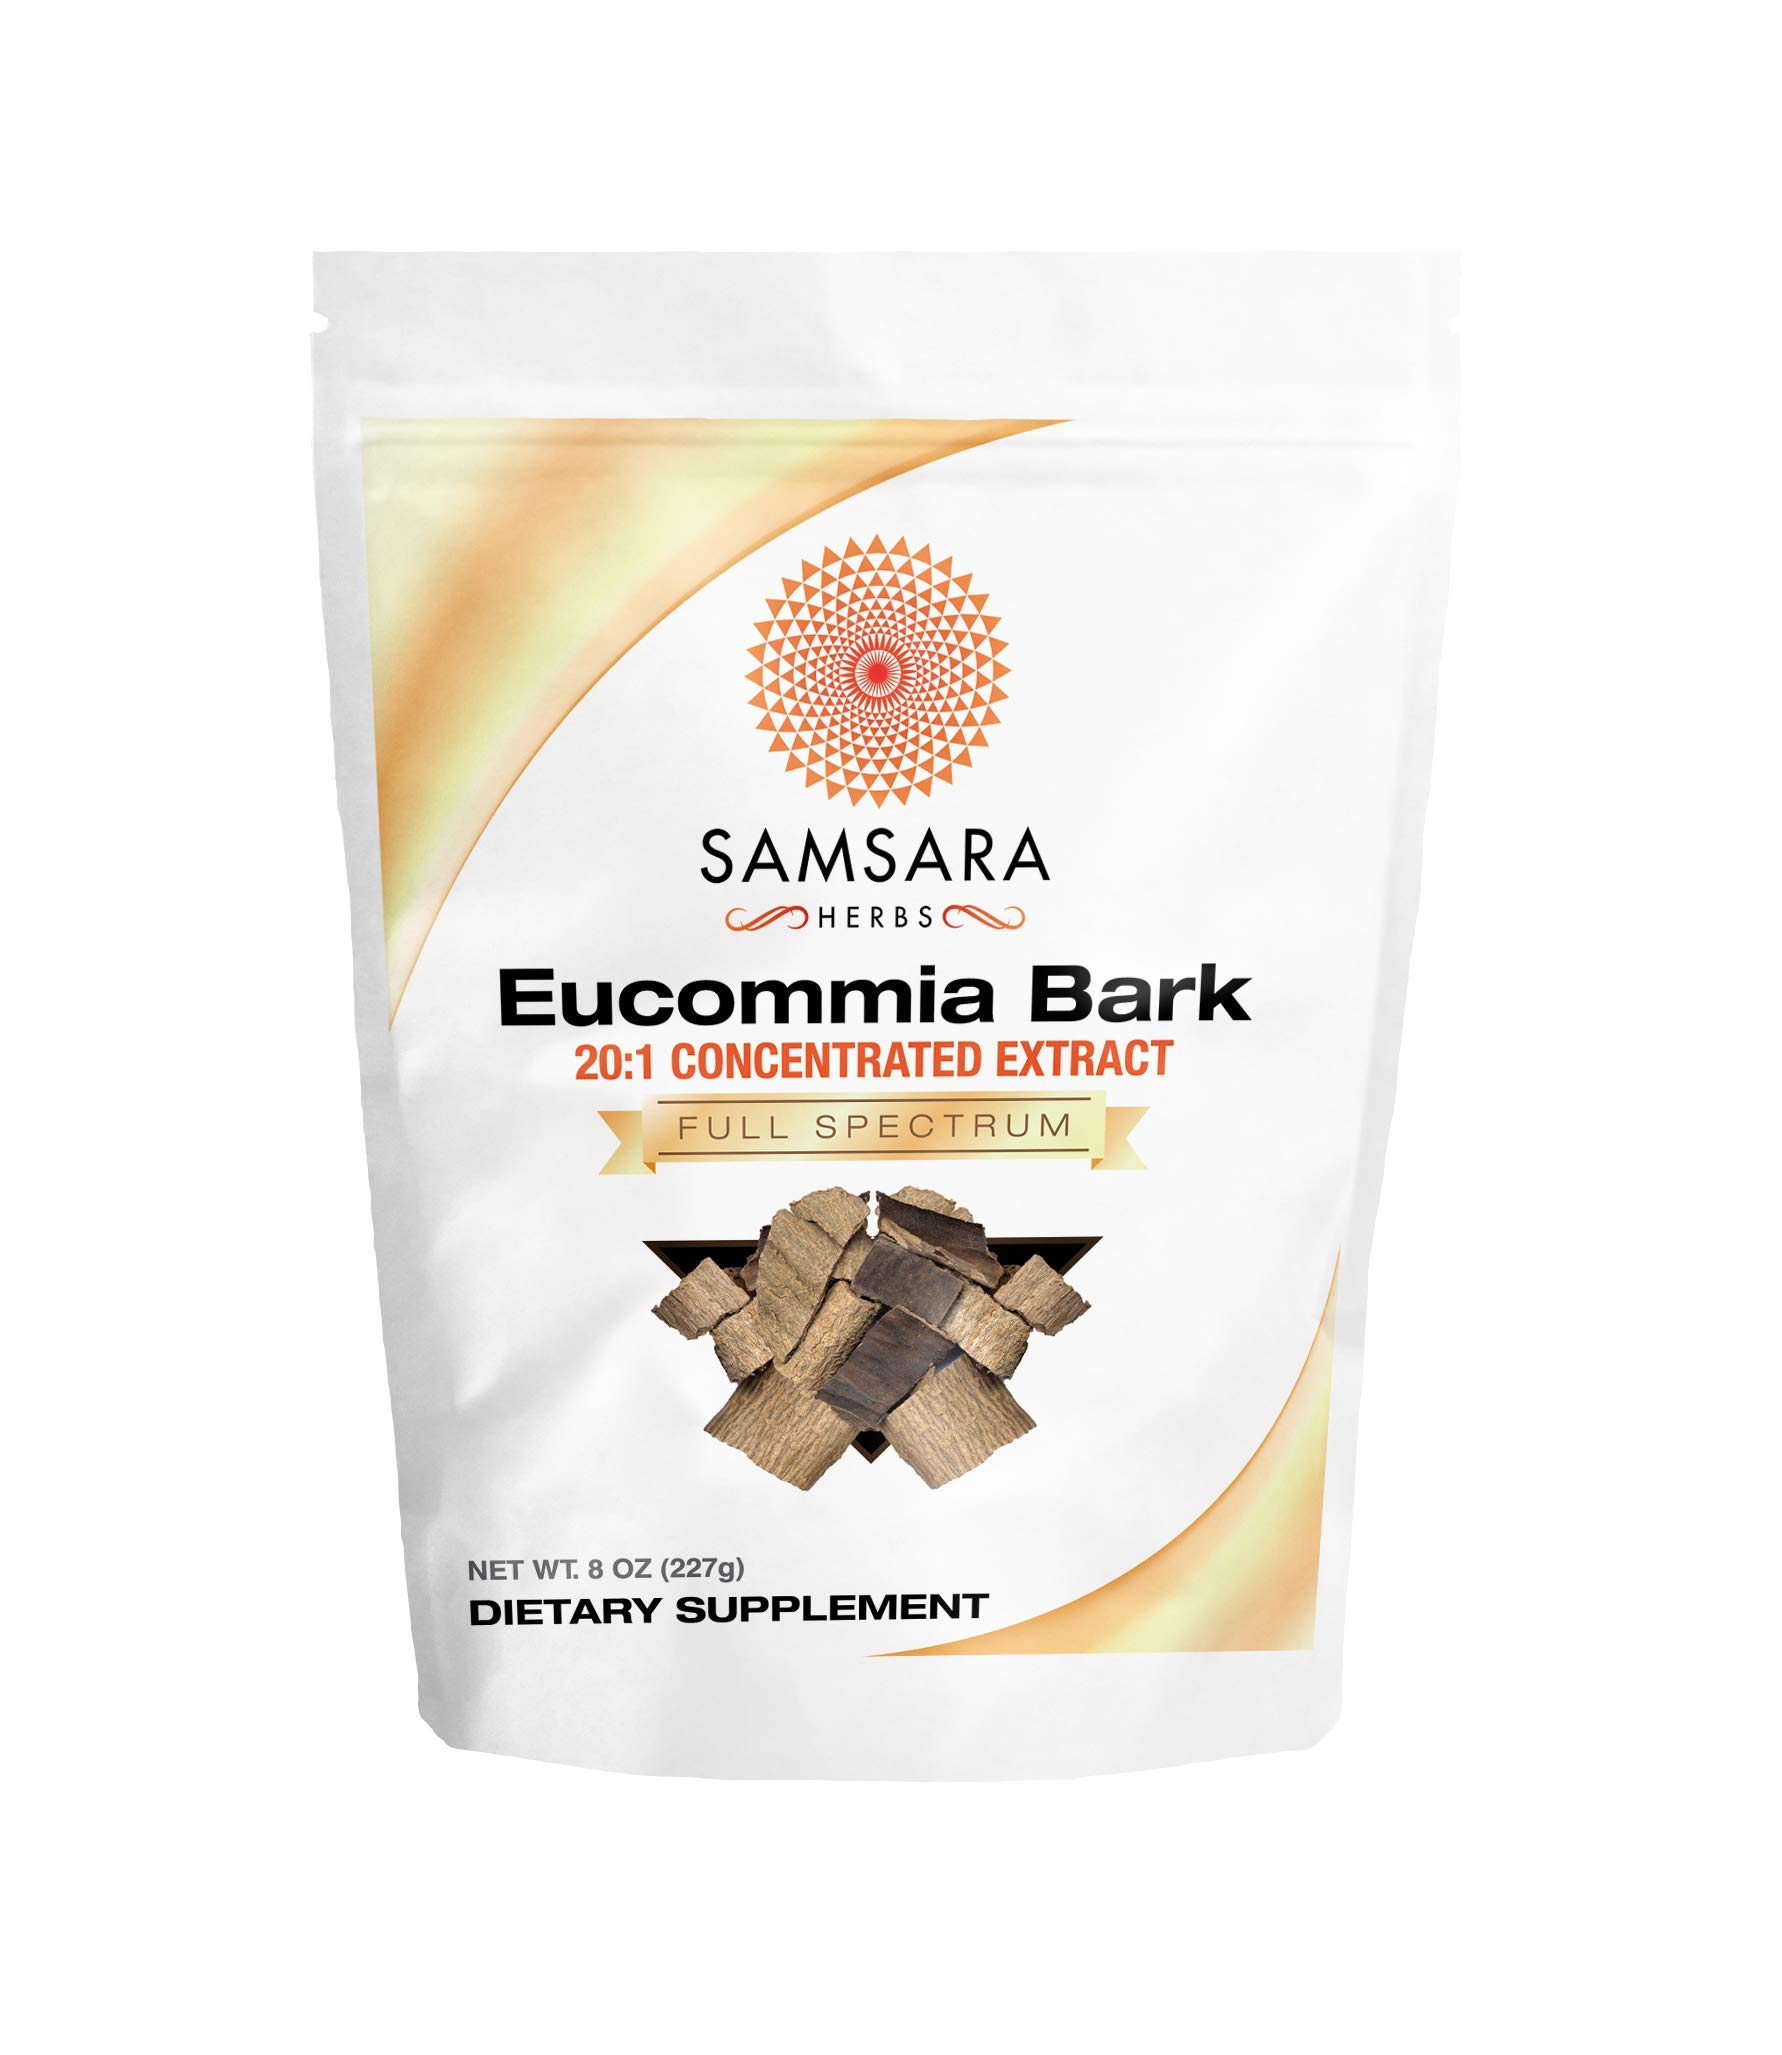 Samsara Herbs Eucommia Extract Powder - 20:1 Concentrated Extract (8oz/227g)